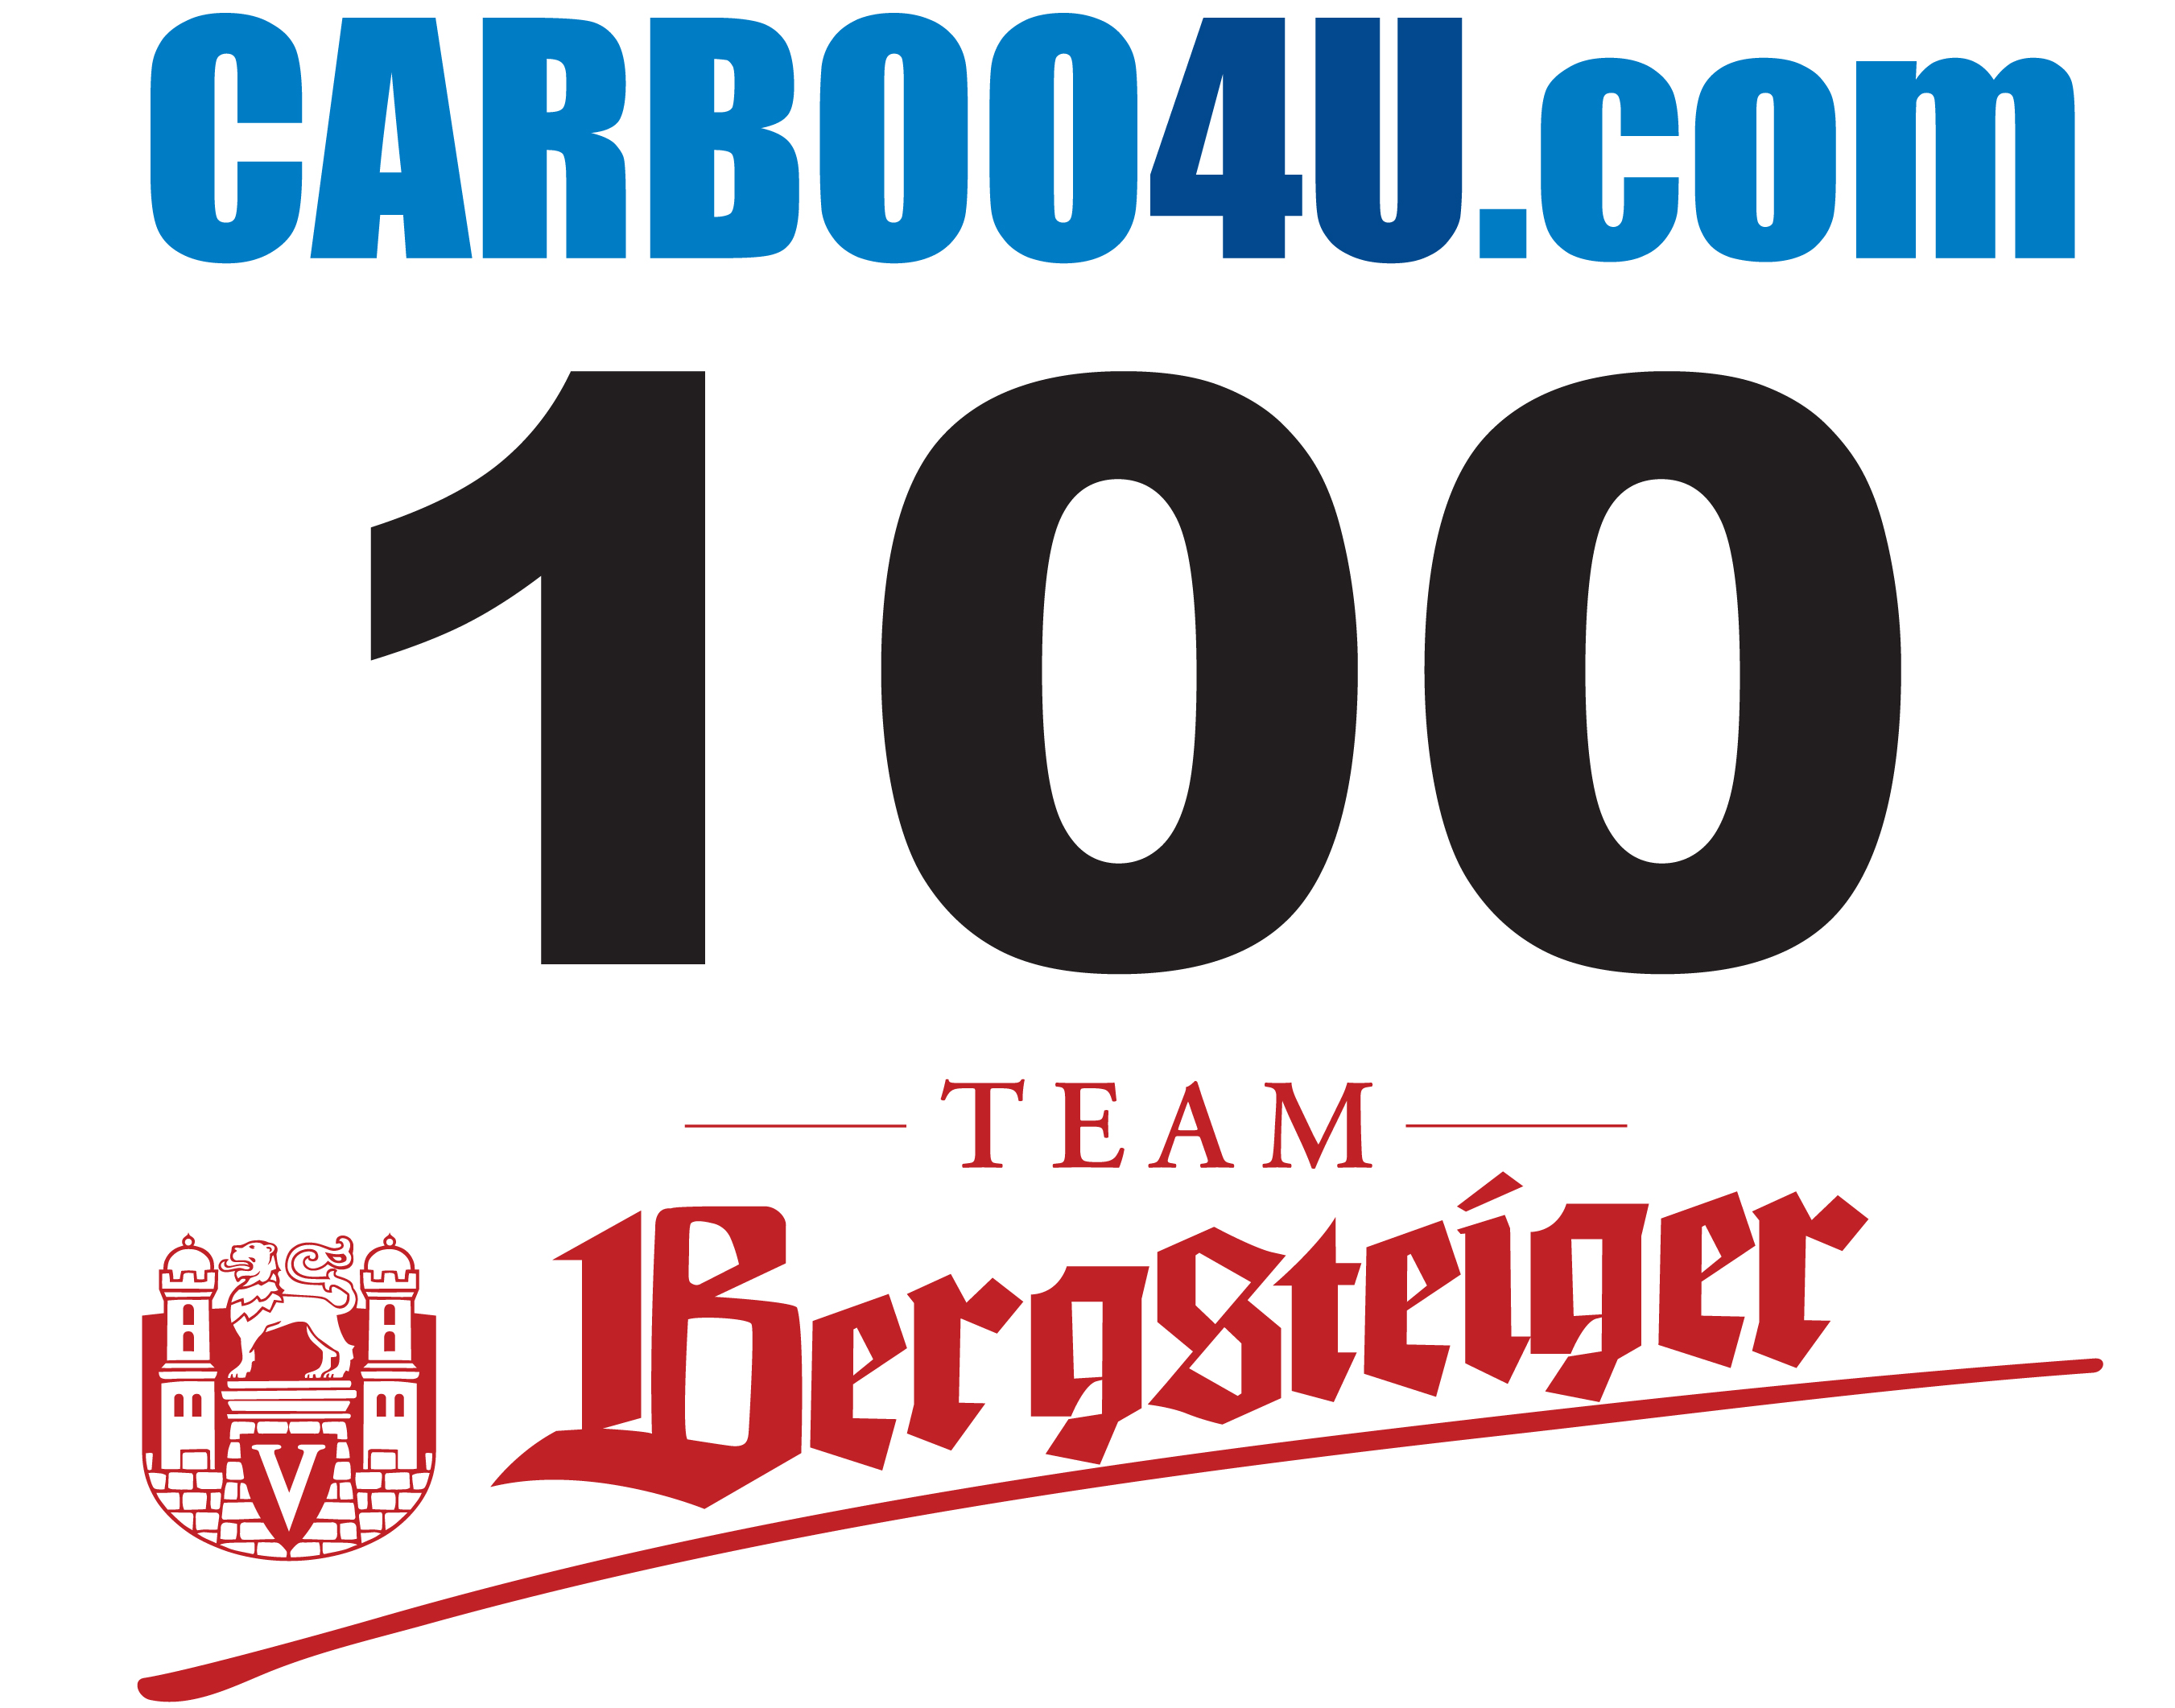 carboo-shop.de - http://www.sportident.com/index.php?option=com_wrapper&view=wrapper&Itemid=2739&lang=de